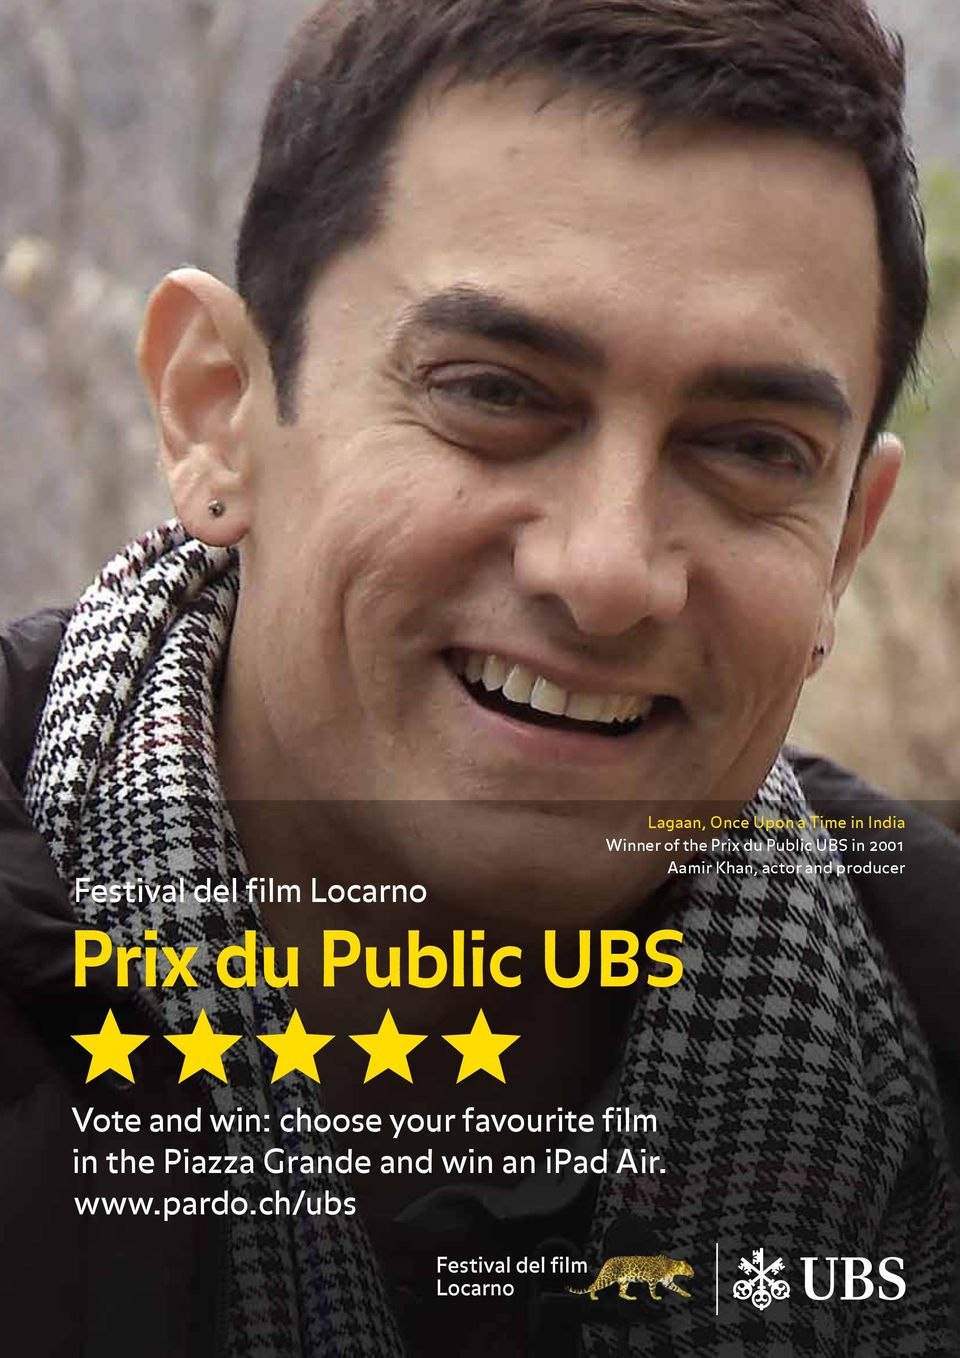 producer Prix du Public UBS Vote and win: choose your